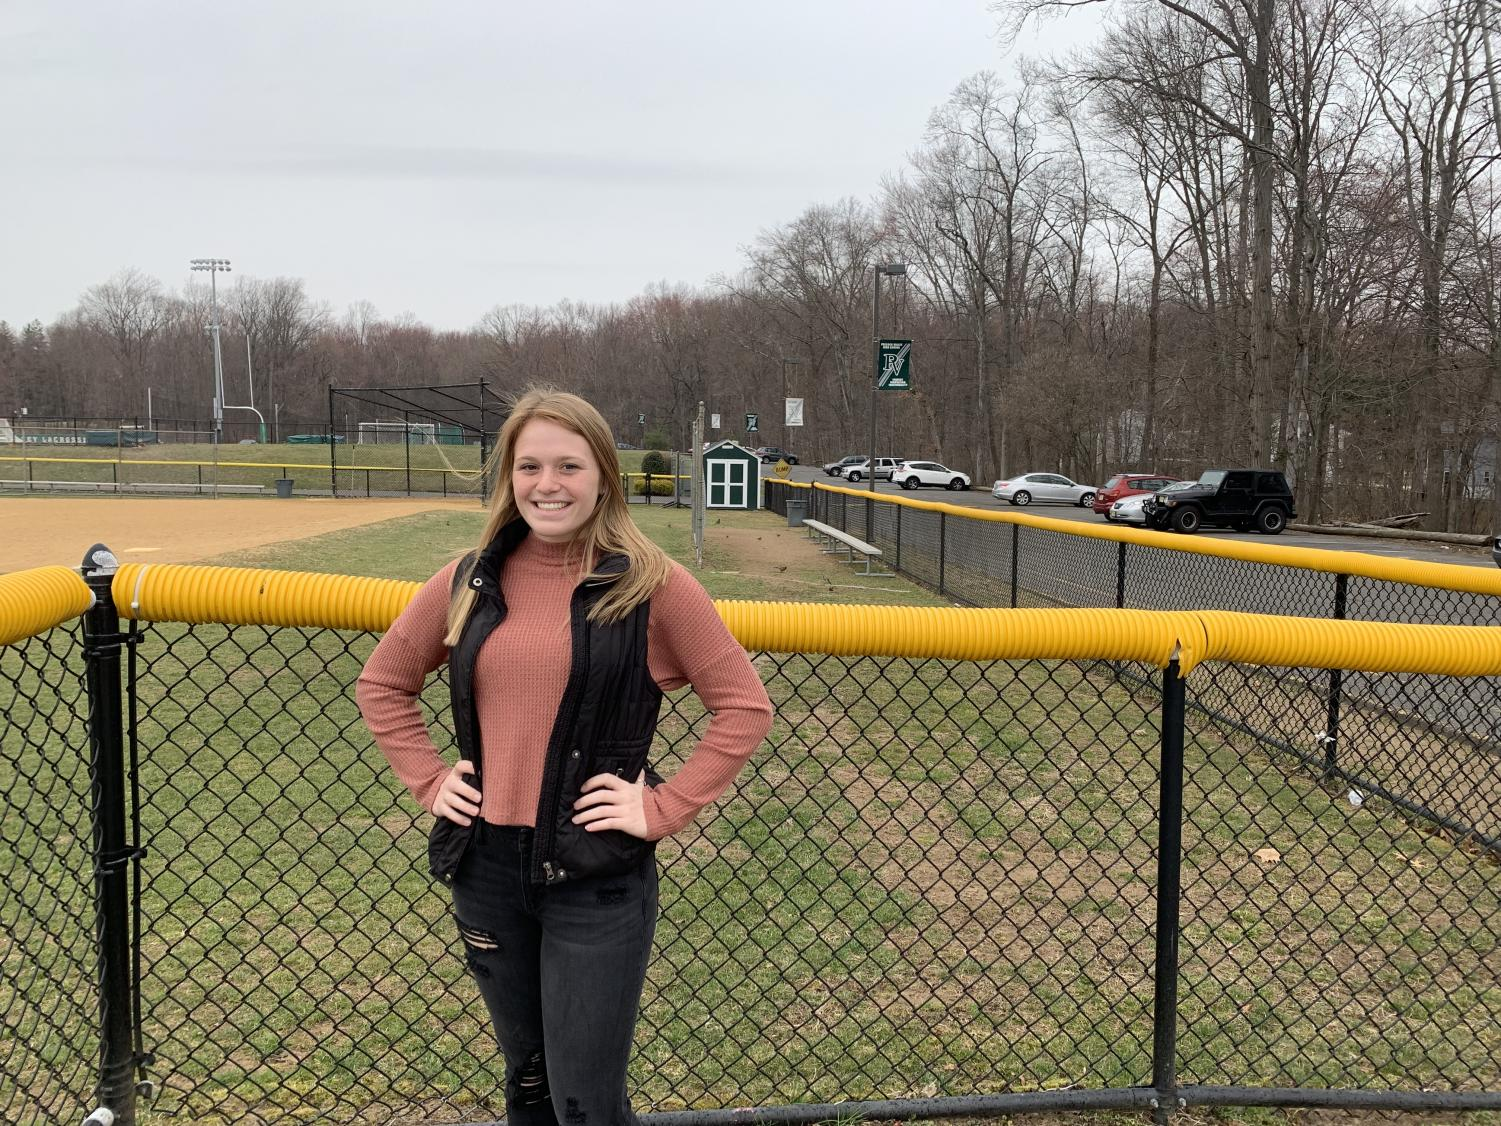 Cara McMahon is The Smoke Signal's Athlete of the Week to open the spring season.